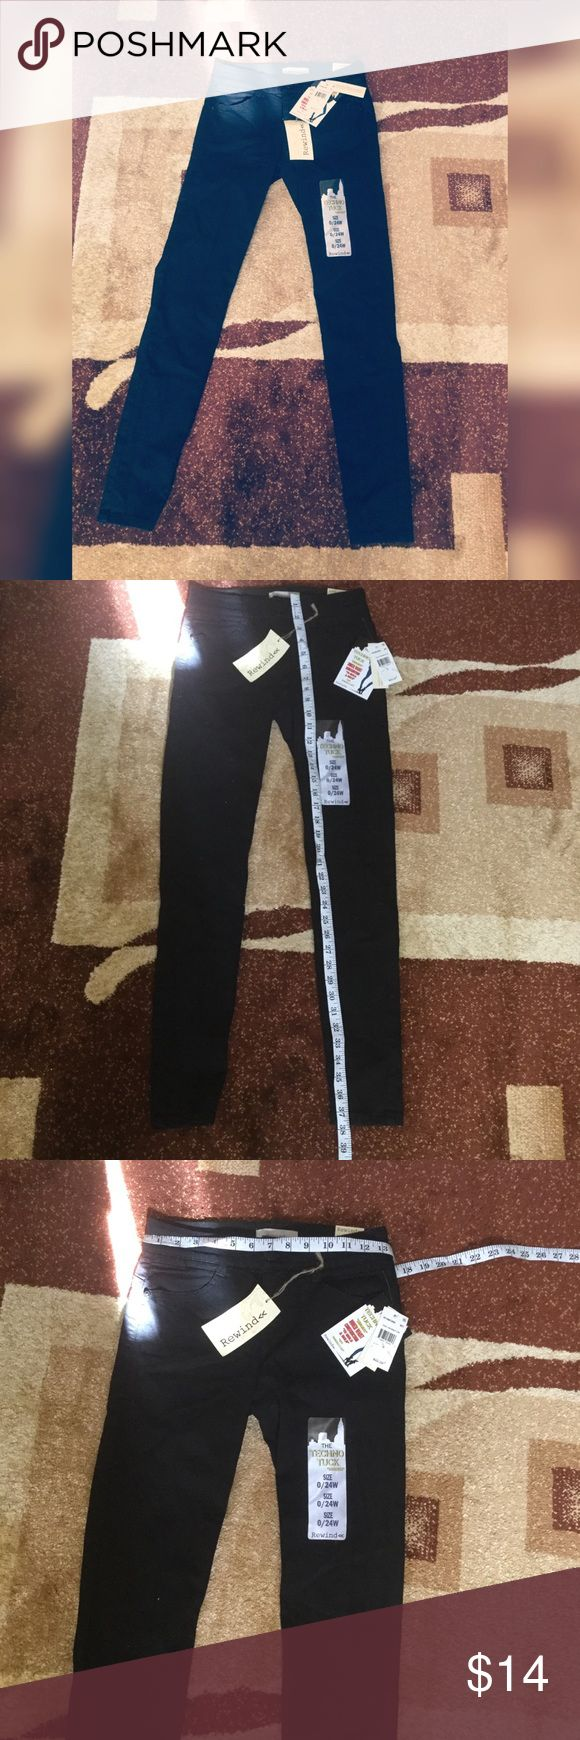 Rewind Women Pants -New with Tag and in Great Condition - Butt lift  - soft  - stretchable from the waist -size 0/24W Rewind Pants